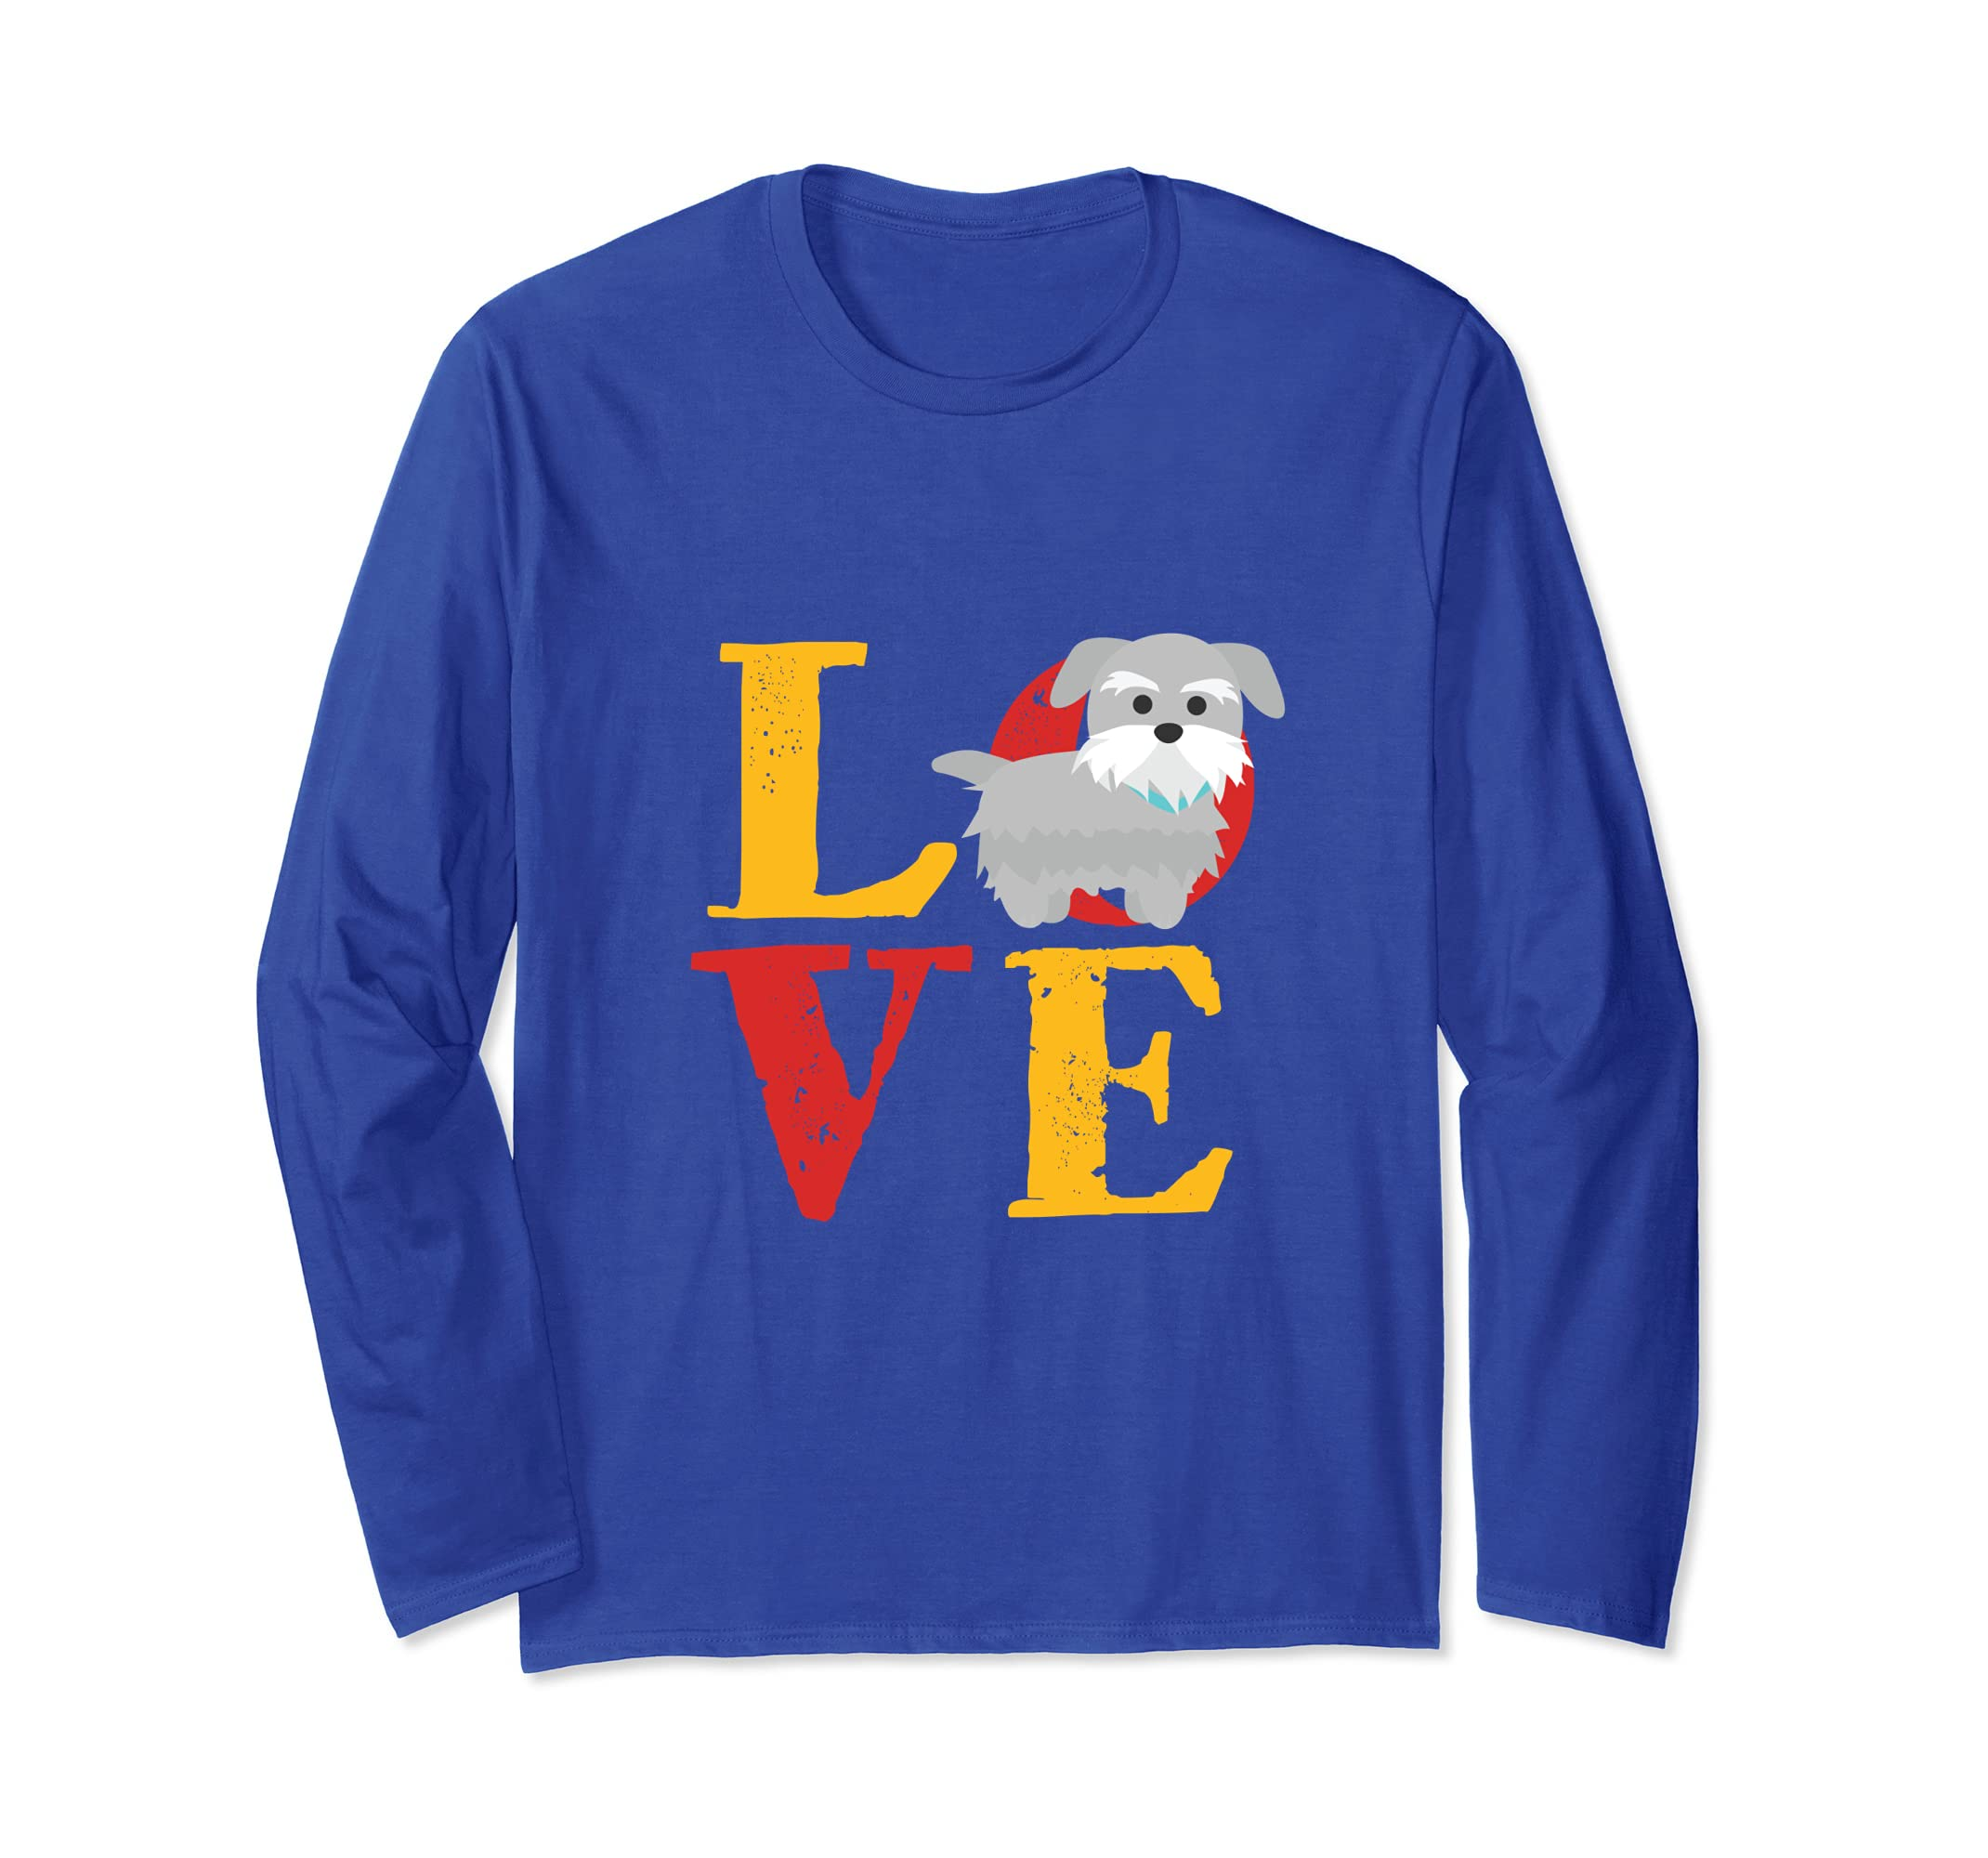 fbd7d9e2 Amazon.com: I Love Miniature Schnauzer Puppy T-shirt Animal Dog Lover:  Clothing